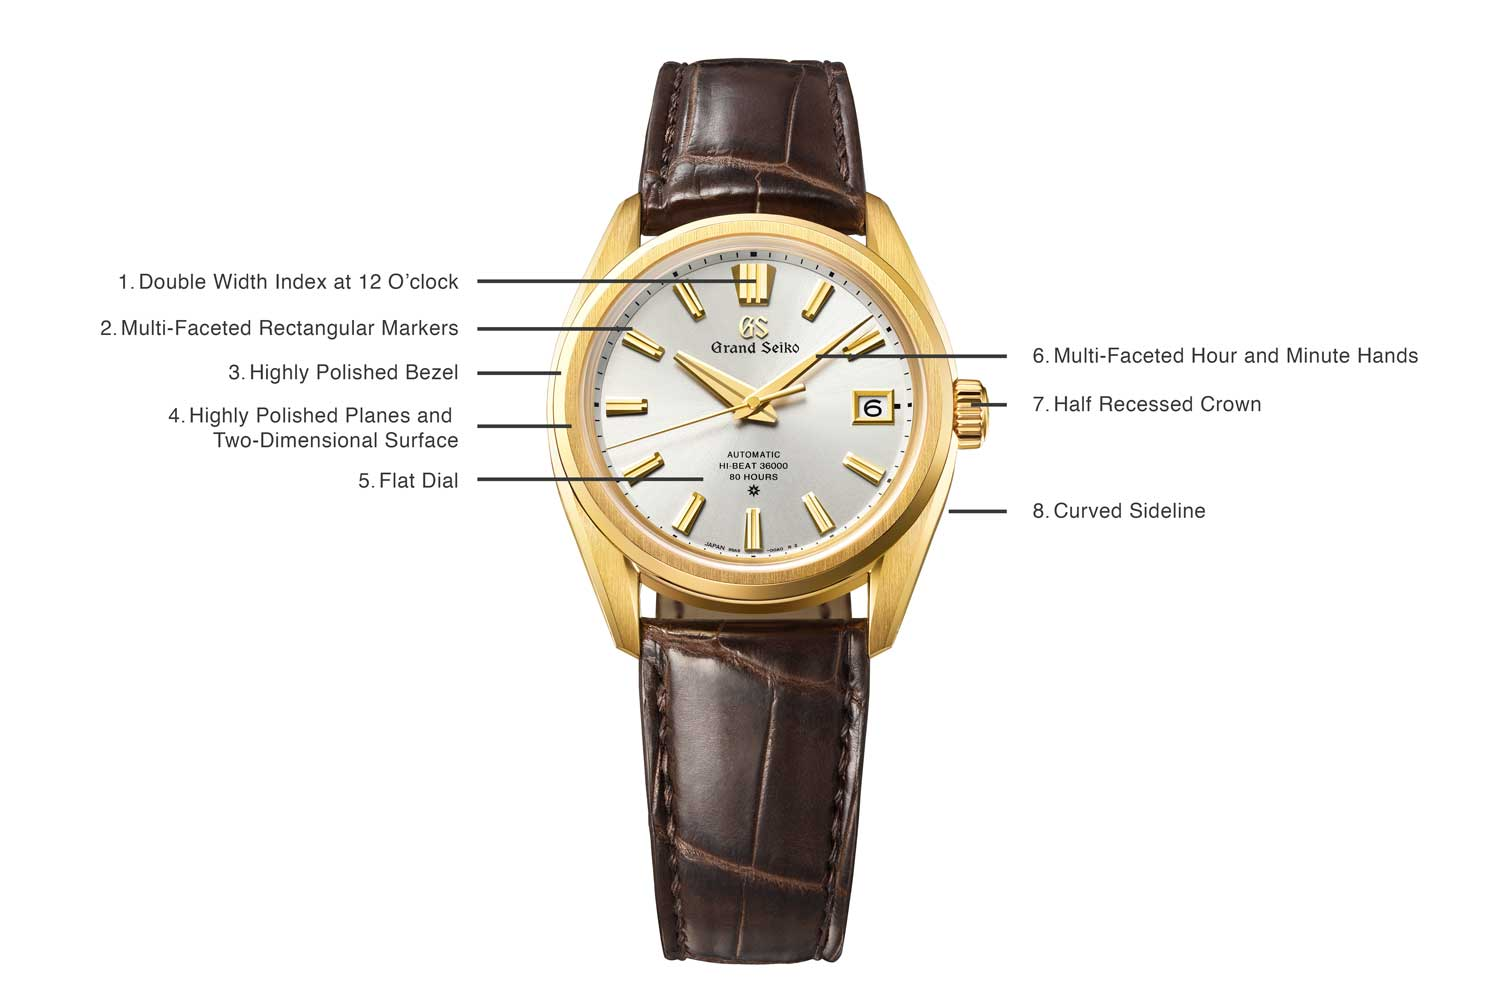 The nine enduring elements of the Grand Seiko Style